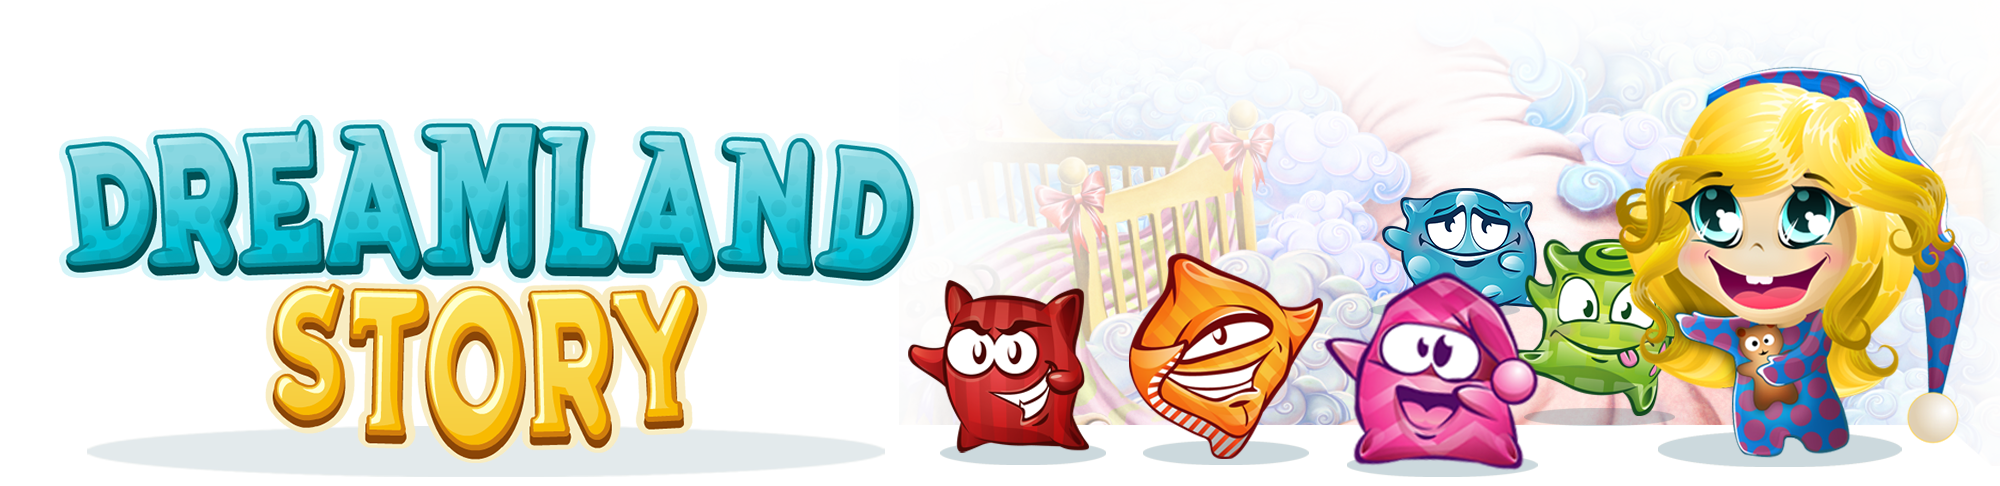 Dreamland Story - Banner 2000x292